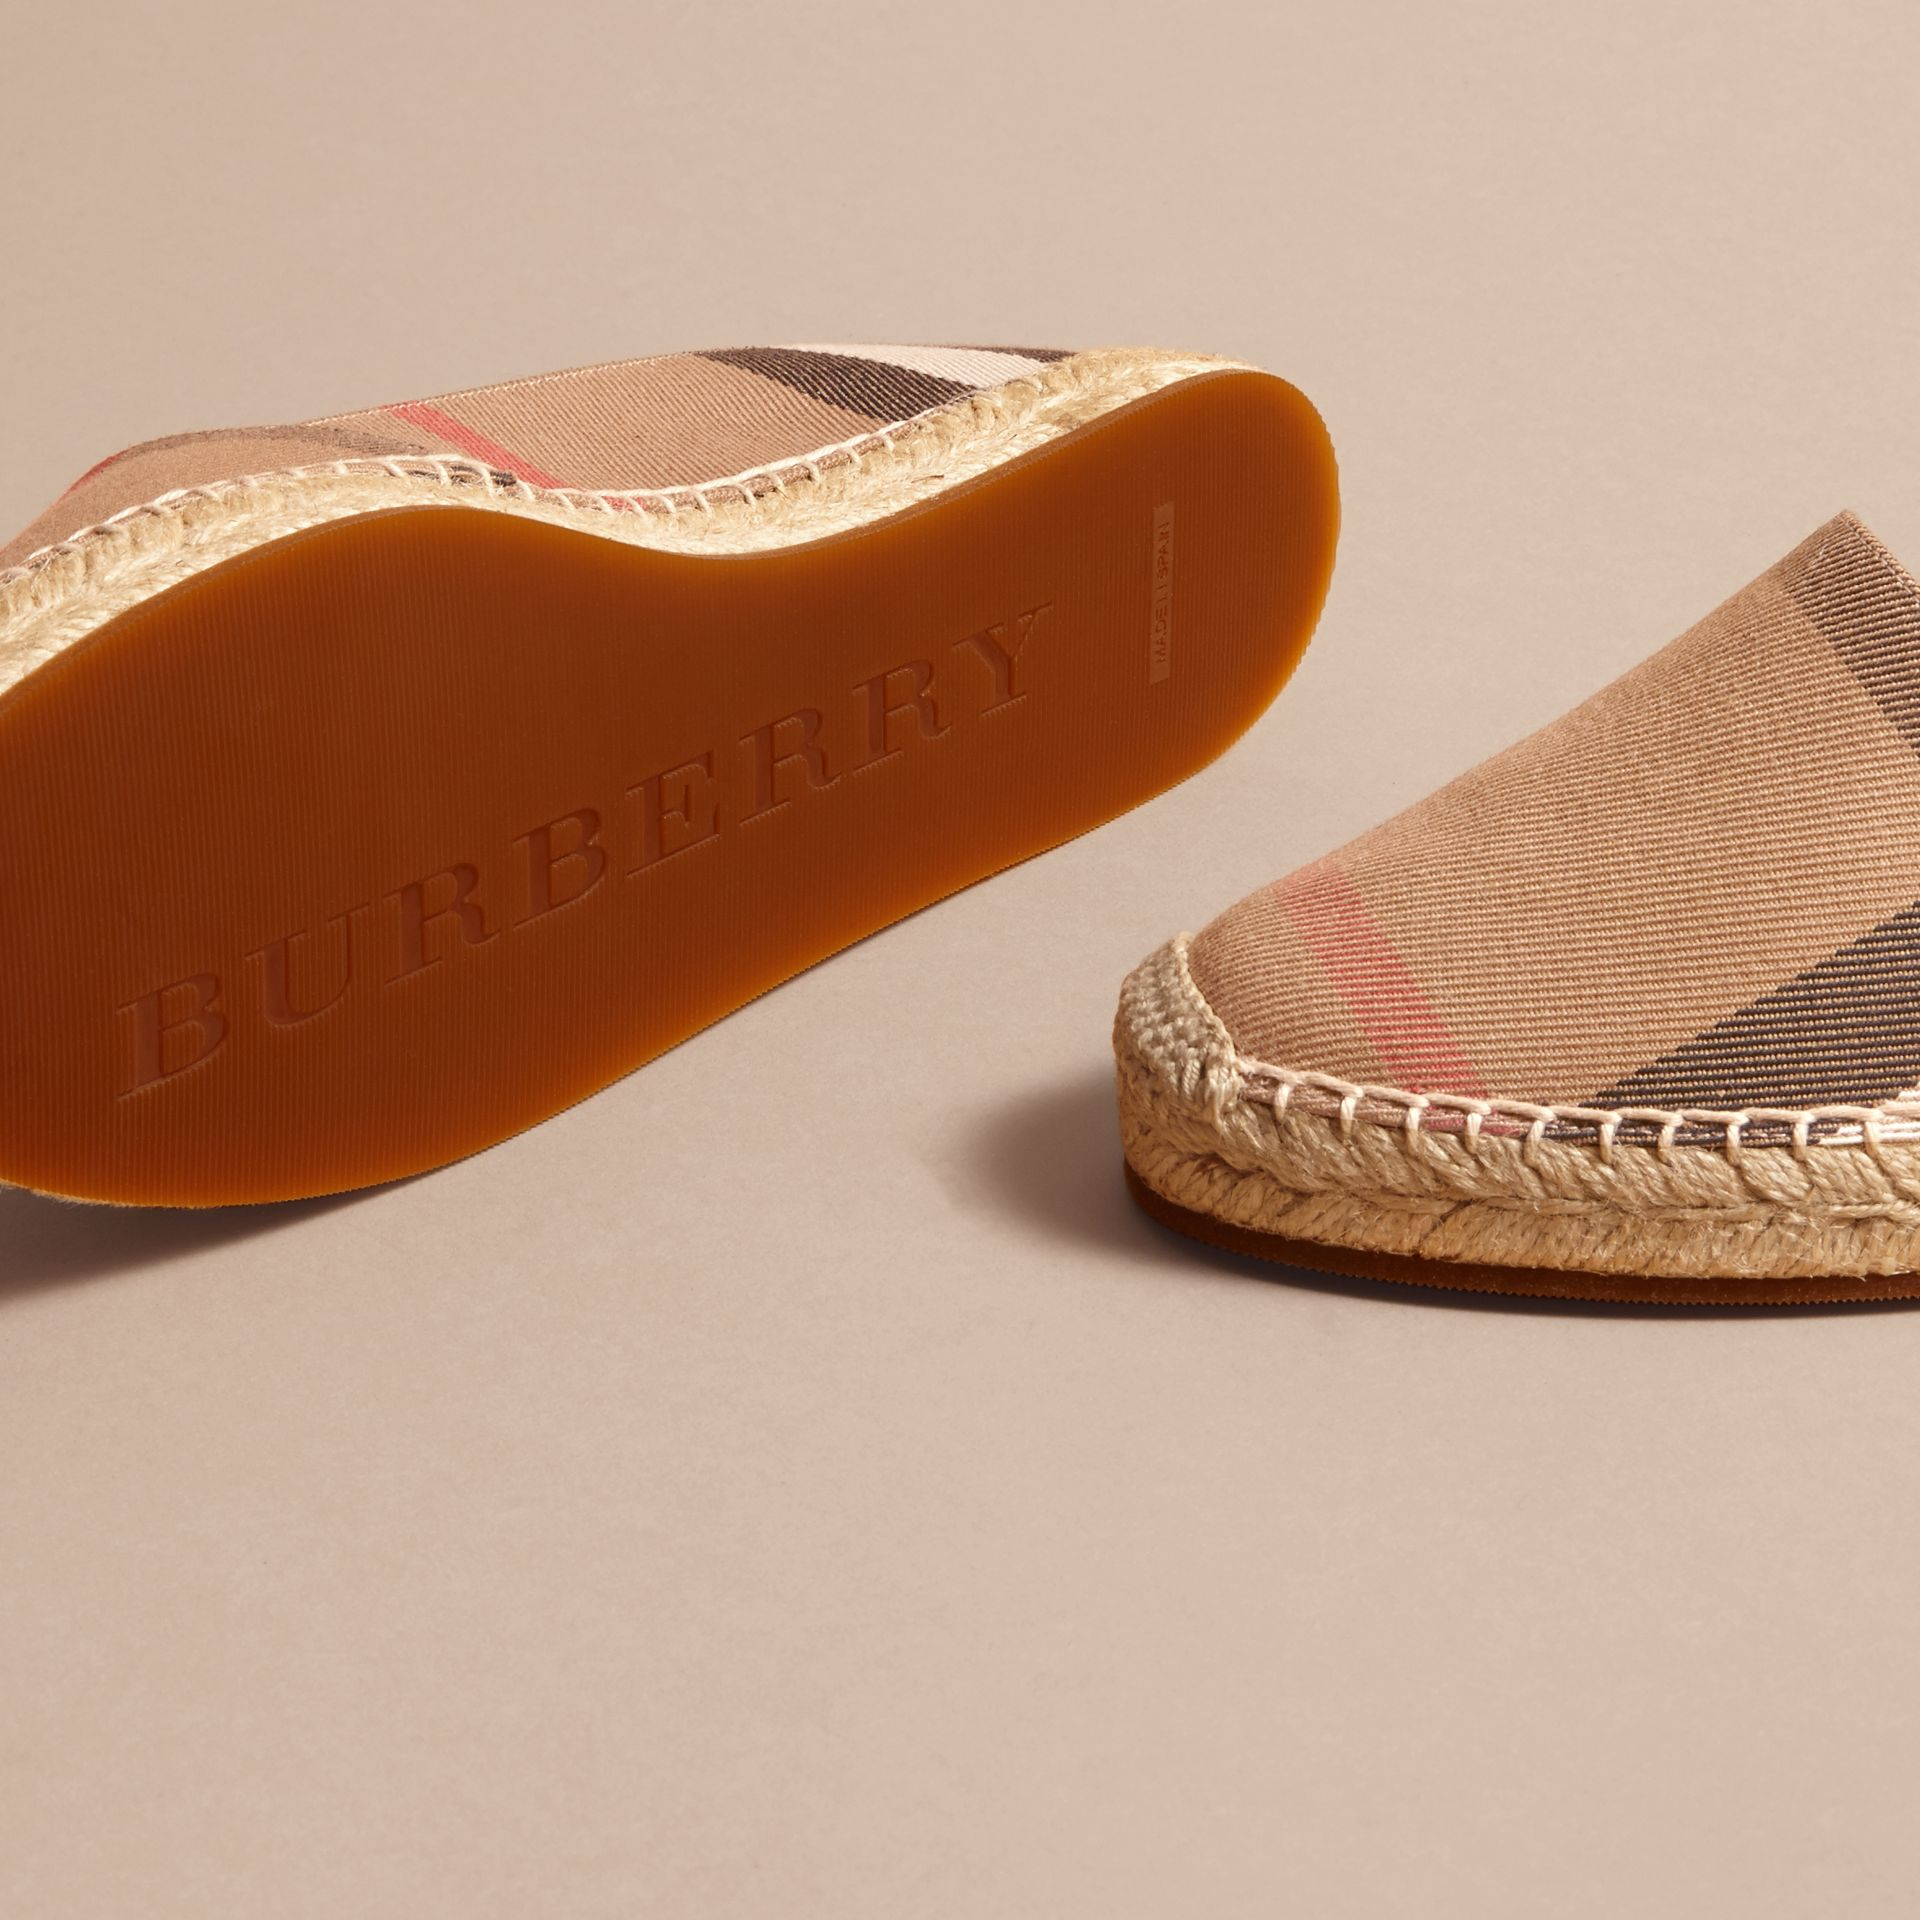 Leather Trim Canvas Check Espadrilles in Classic - Women | Burberry United Kingdom - gallery image 4